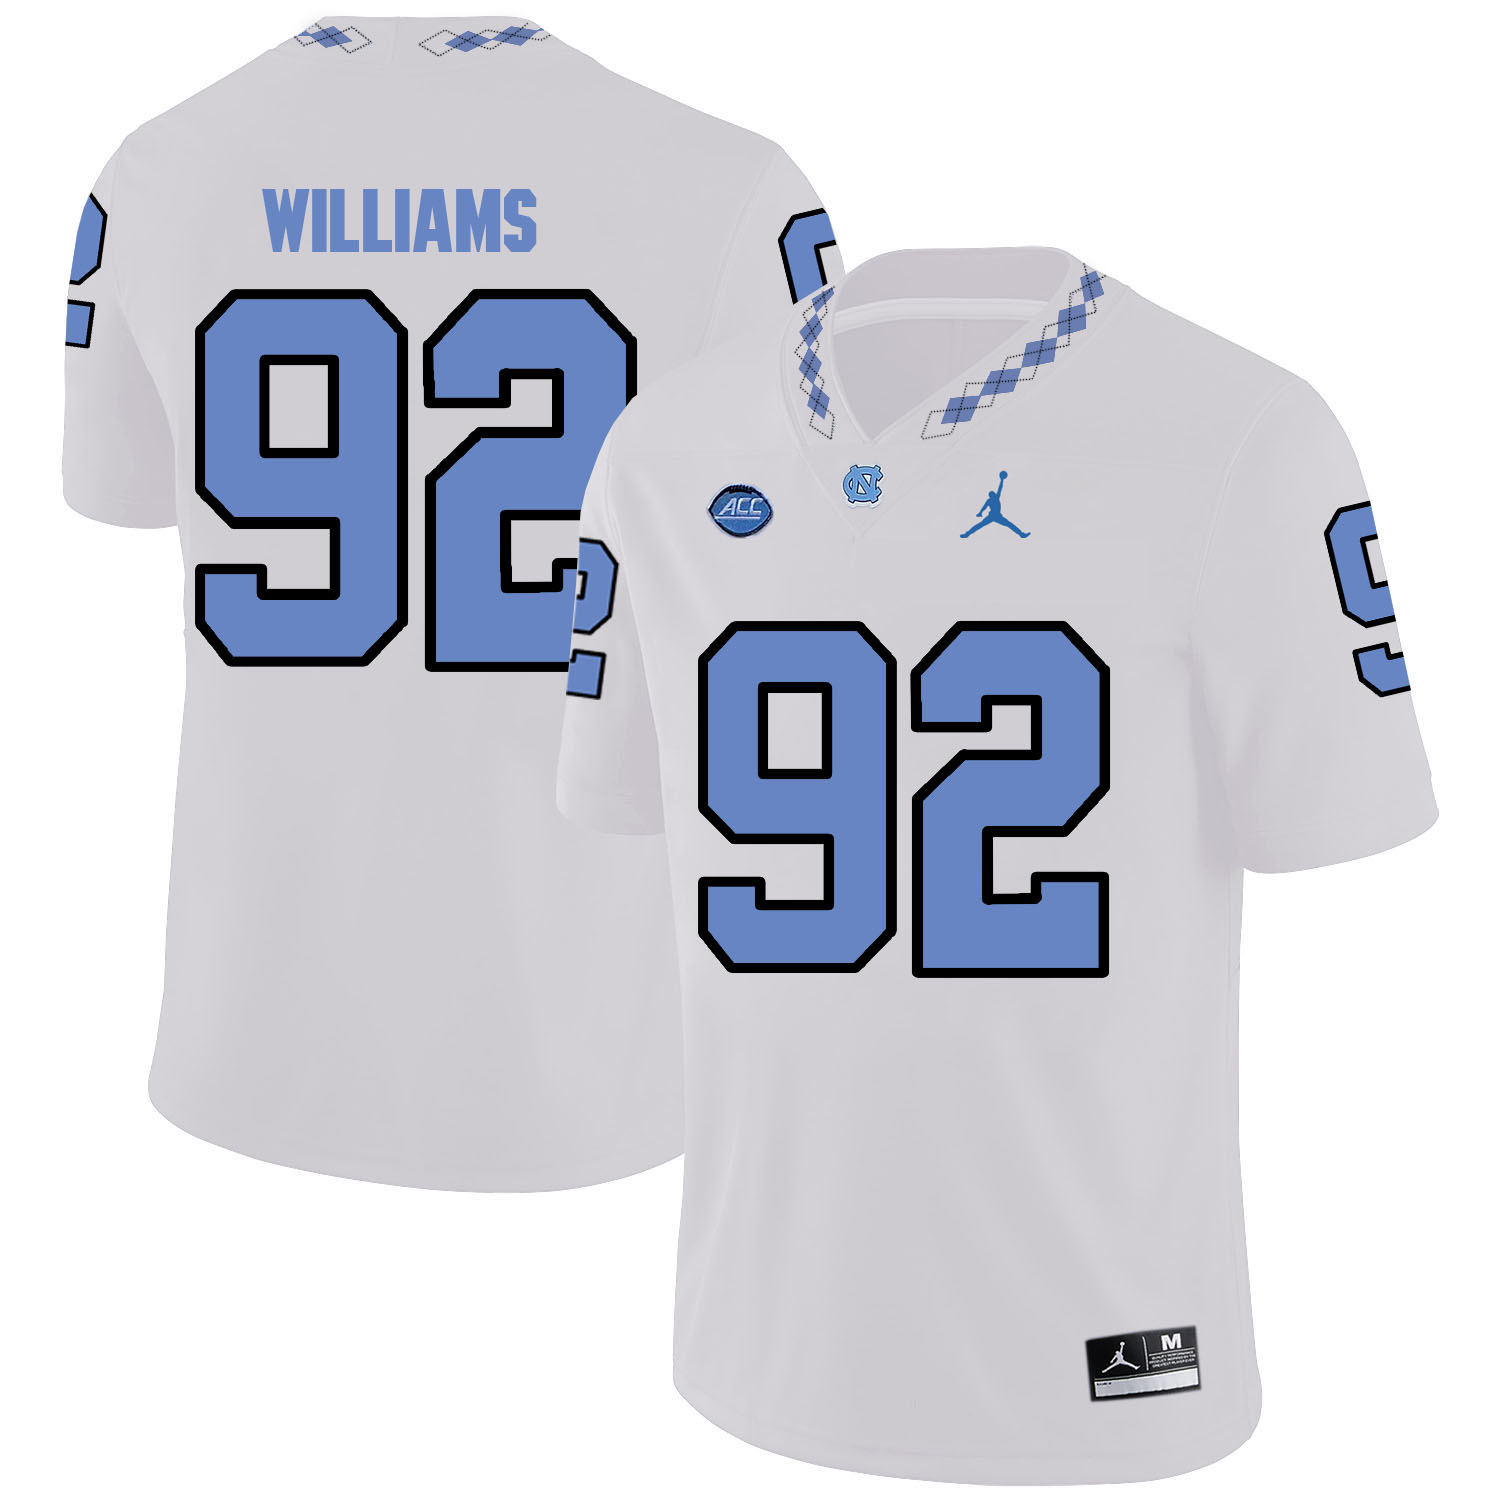 North Carolina Tar Heels 92 Sylvester Williams White College Football Jersey